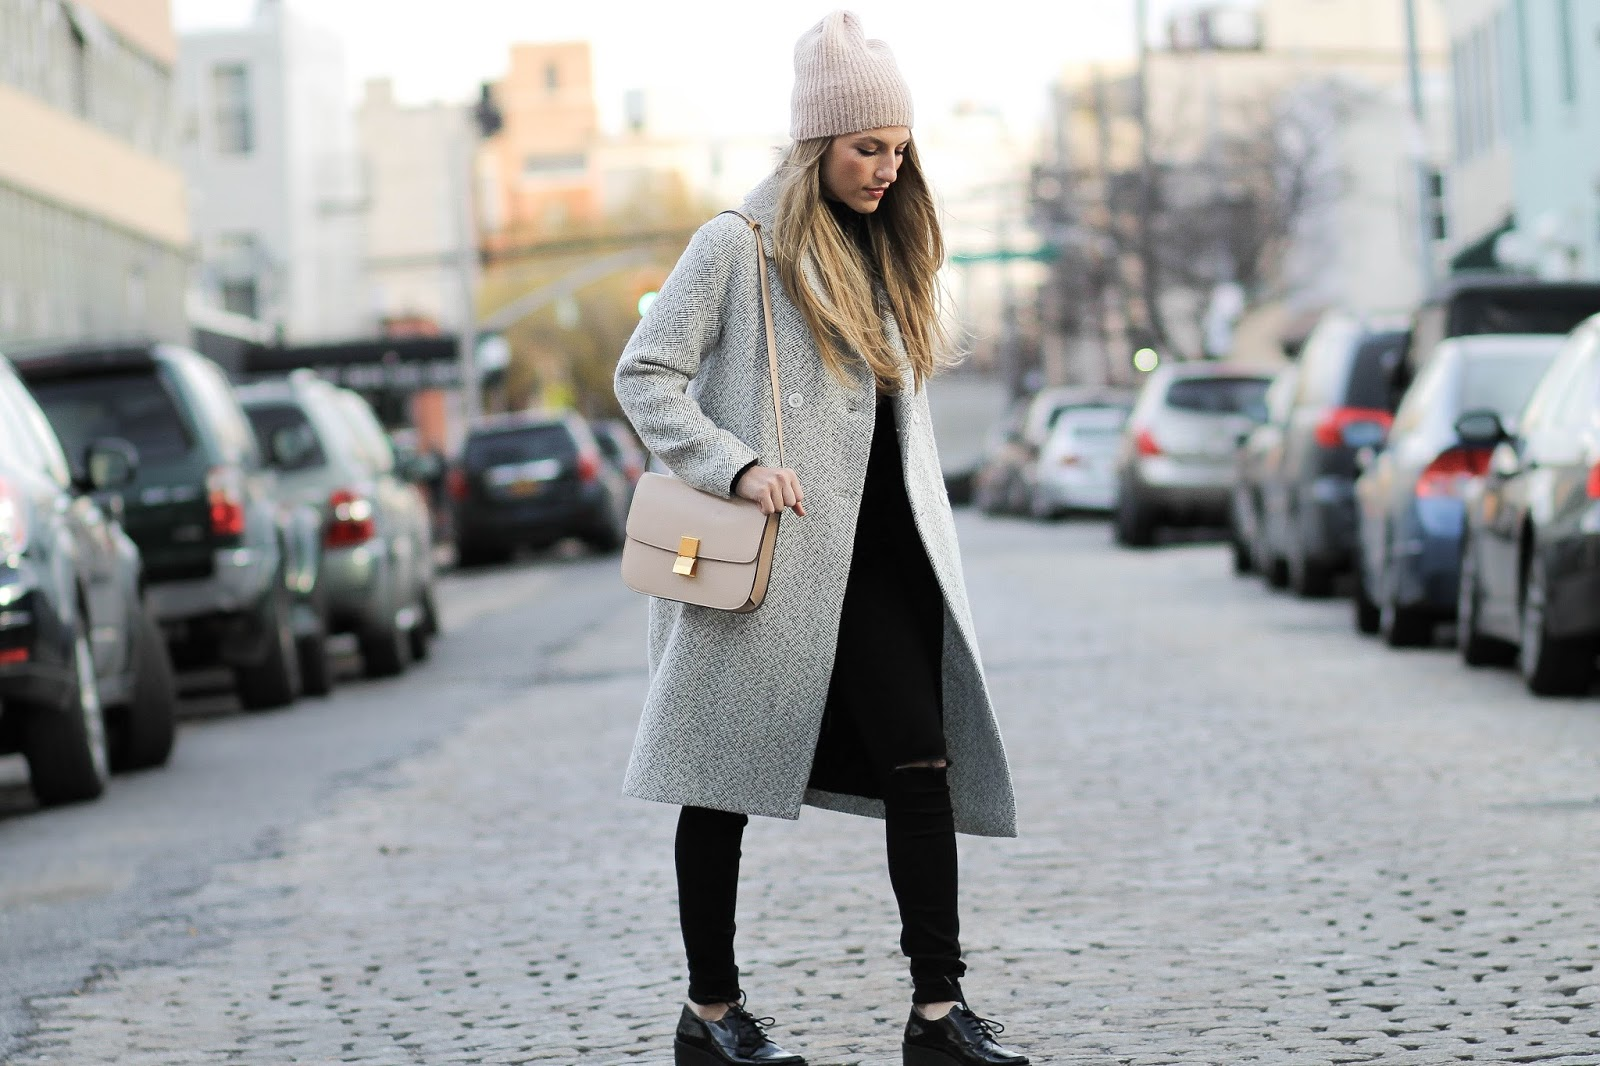 beige celine box bag, grey trench coat